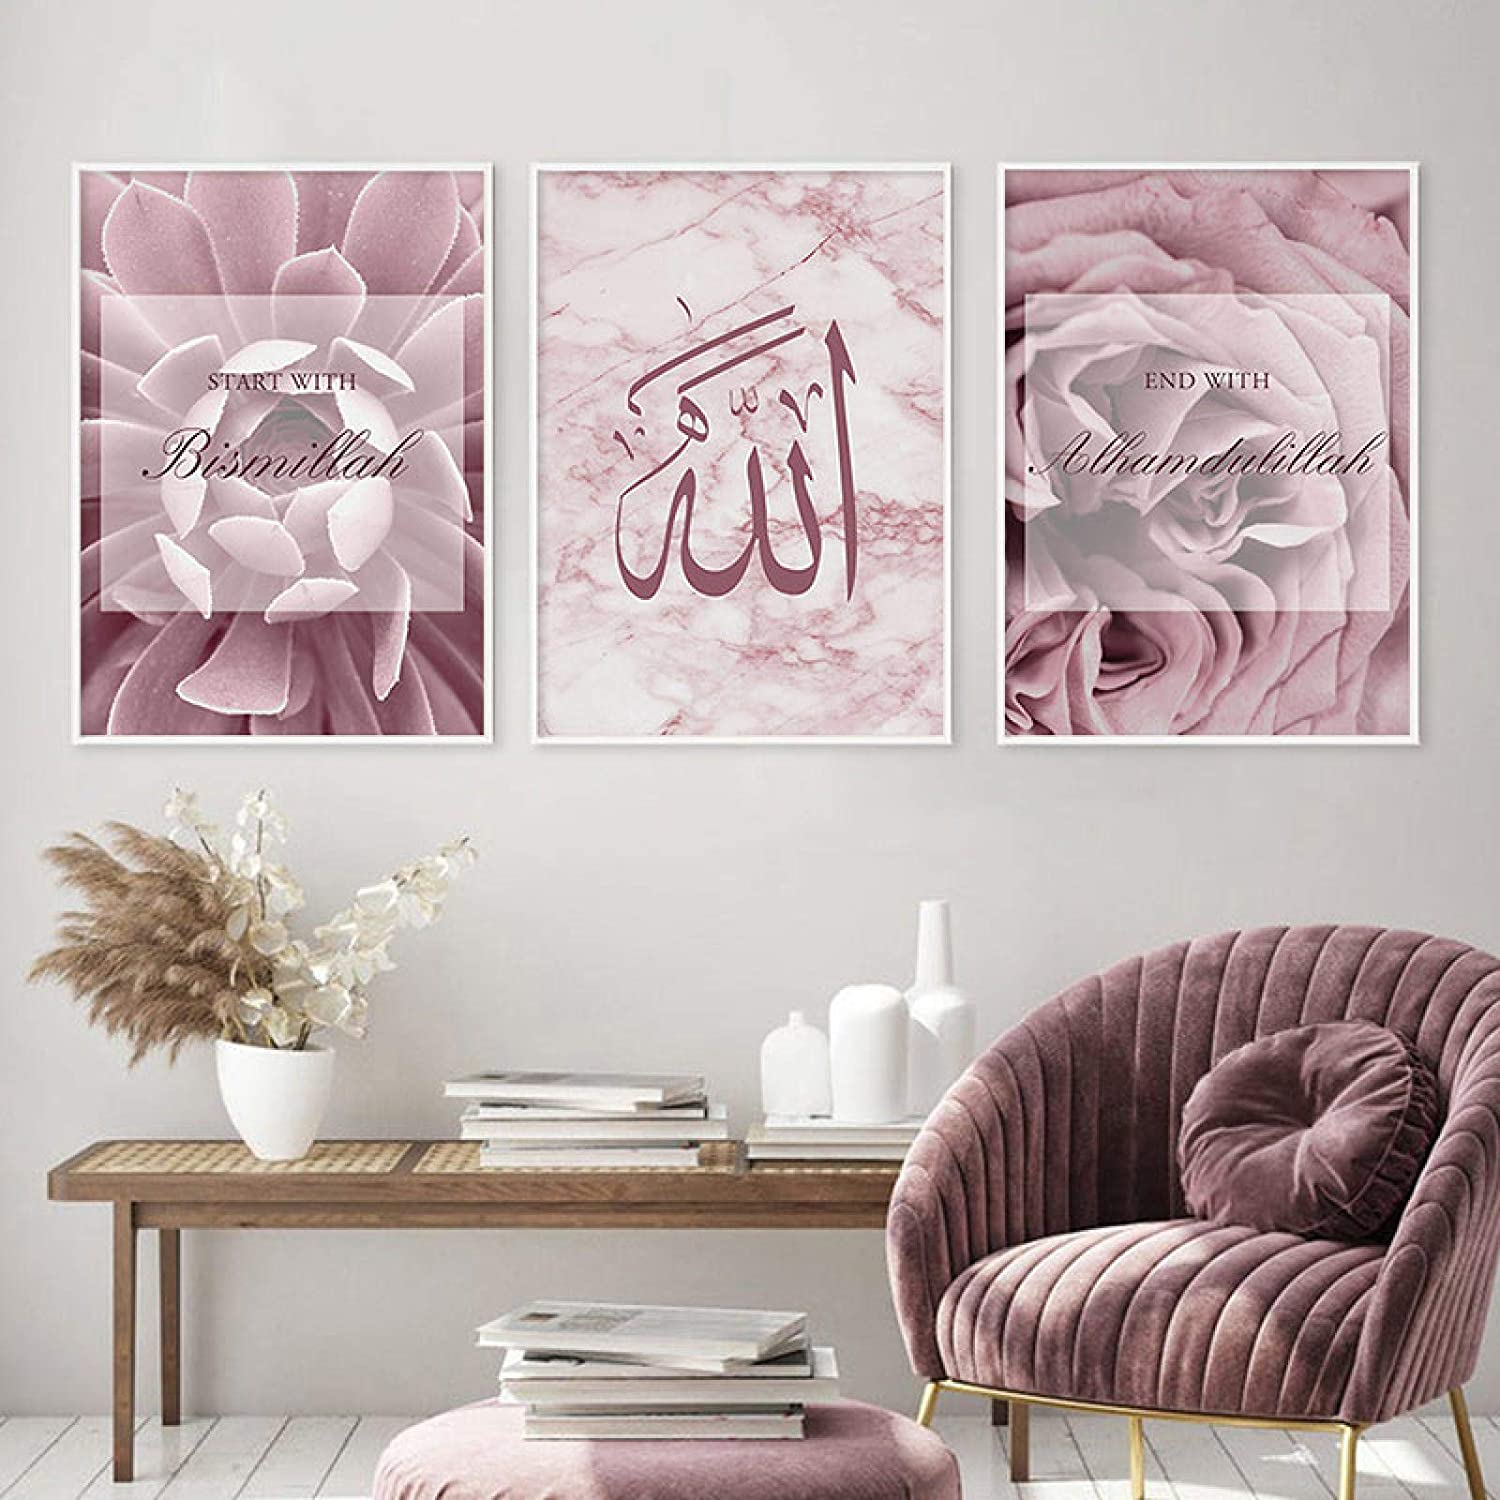 KELEQI ! Super beauty product restock quality top! Islamic Wall Art Rose Gold Pa Marble Canvas Modern Outlet SALE Floral